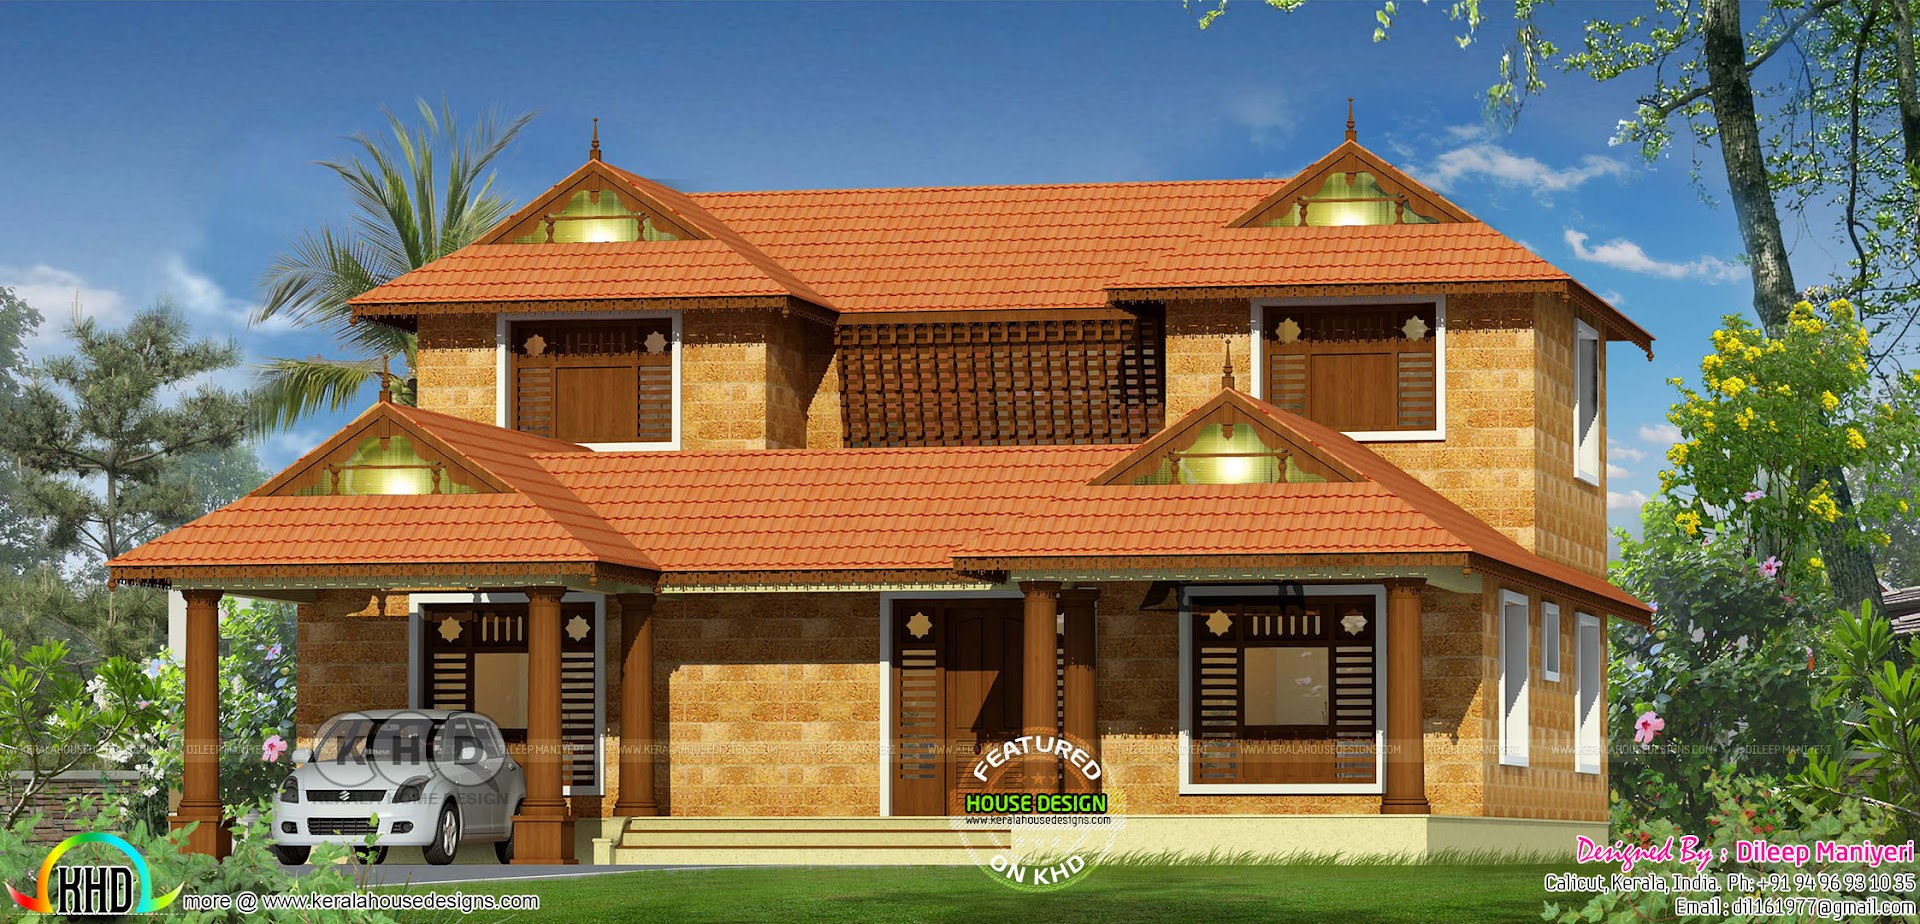 2018 kerala home design and floor plans 8000 houses